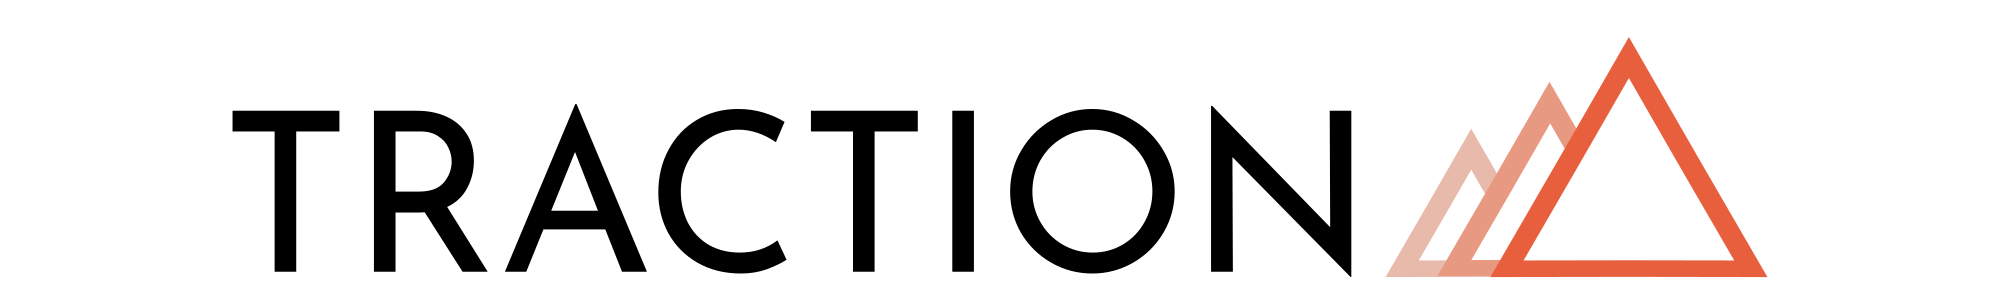 Traction – GTM Plays for Enterprise Products